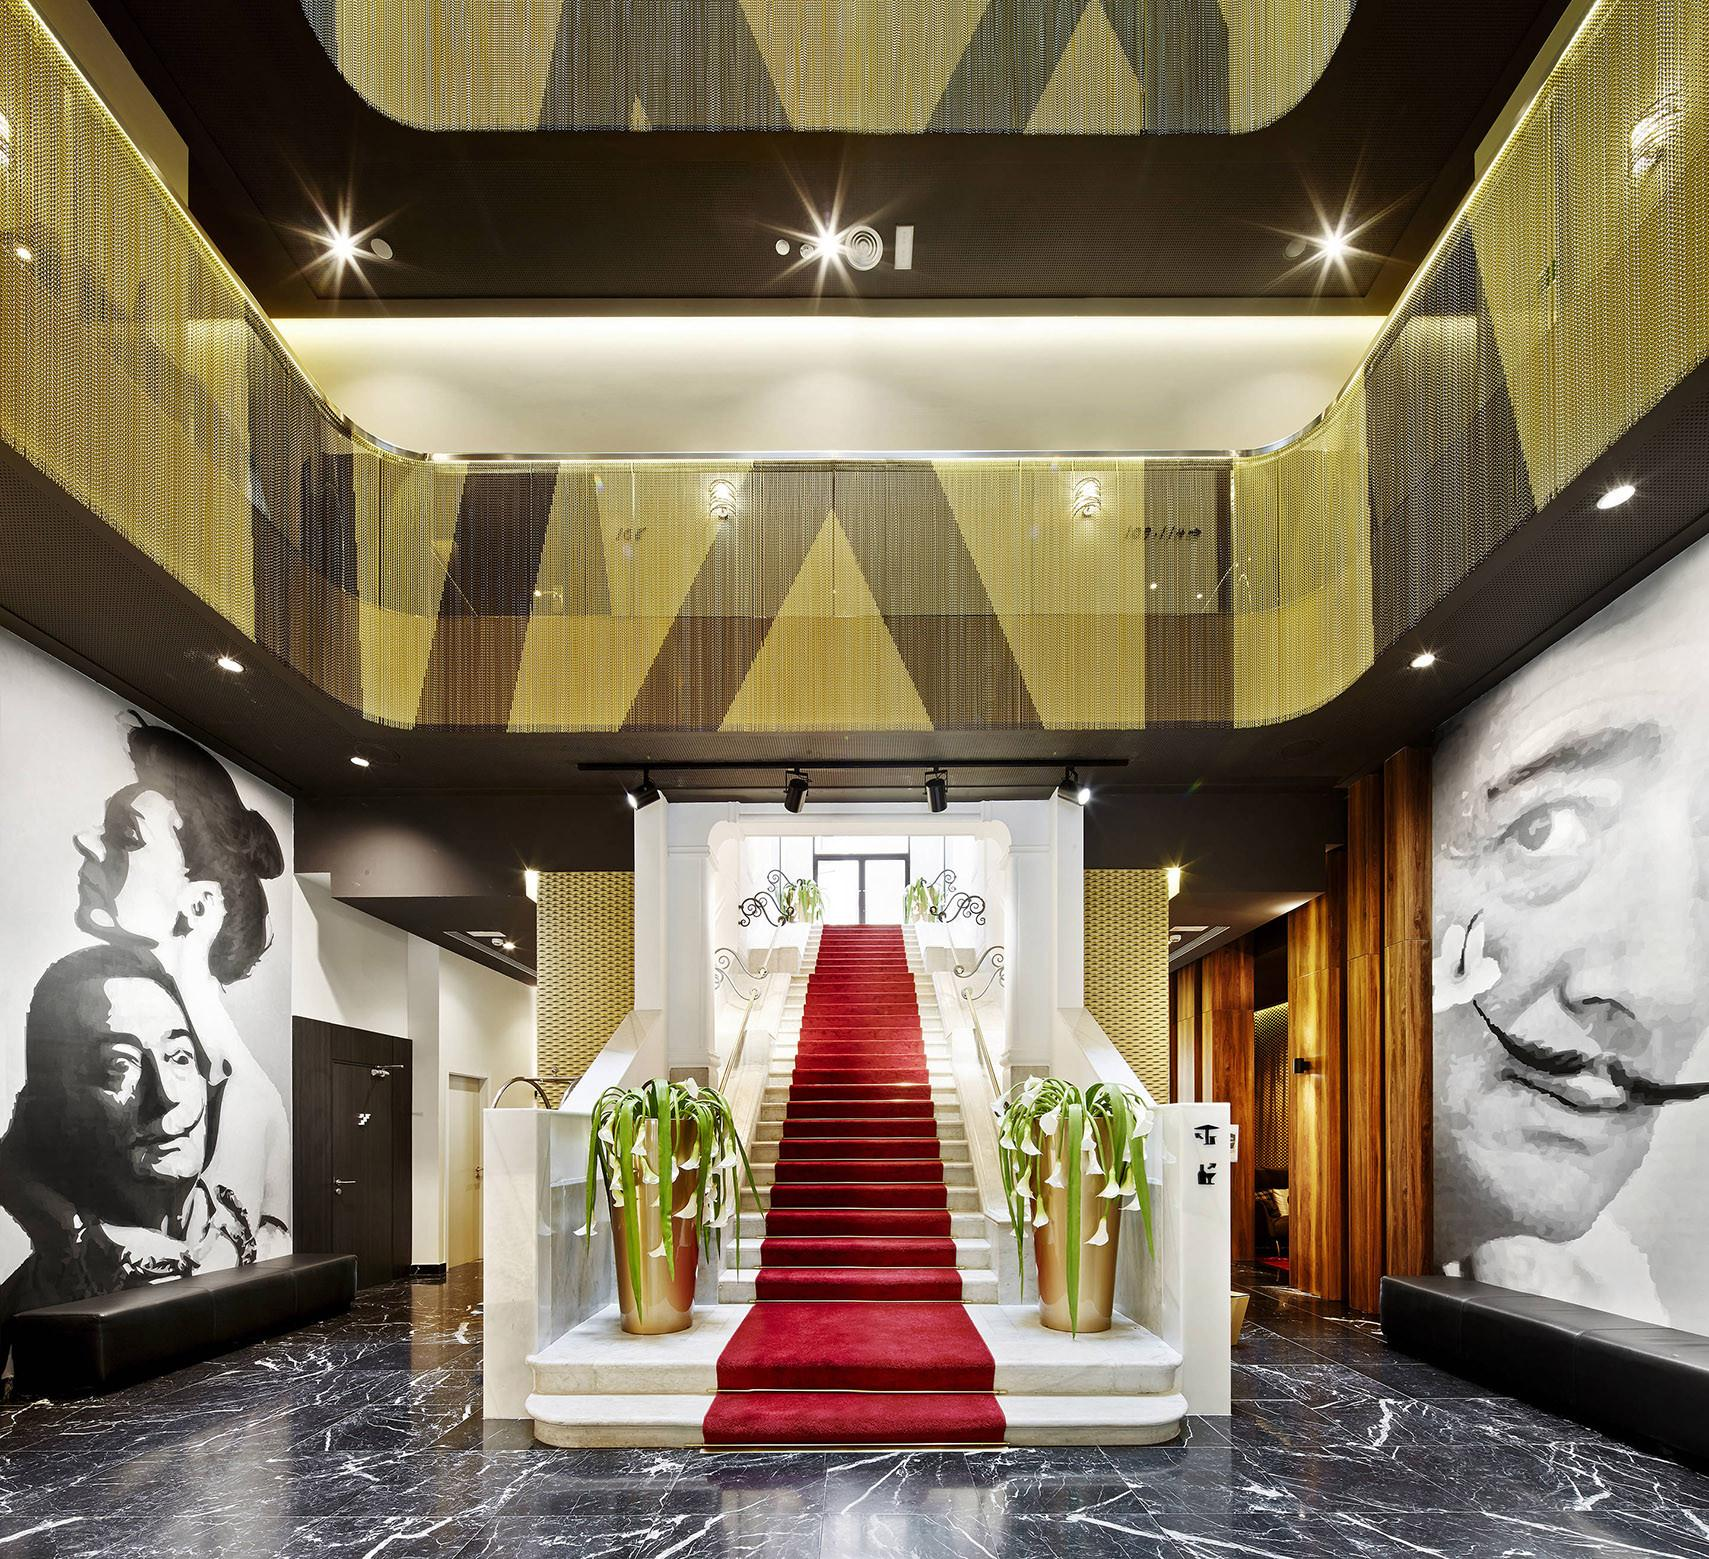 The vincci gala hotel in barcelona archiscene your for Design hotel barcelona